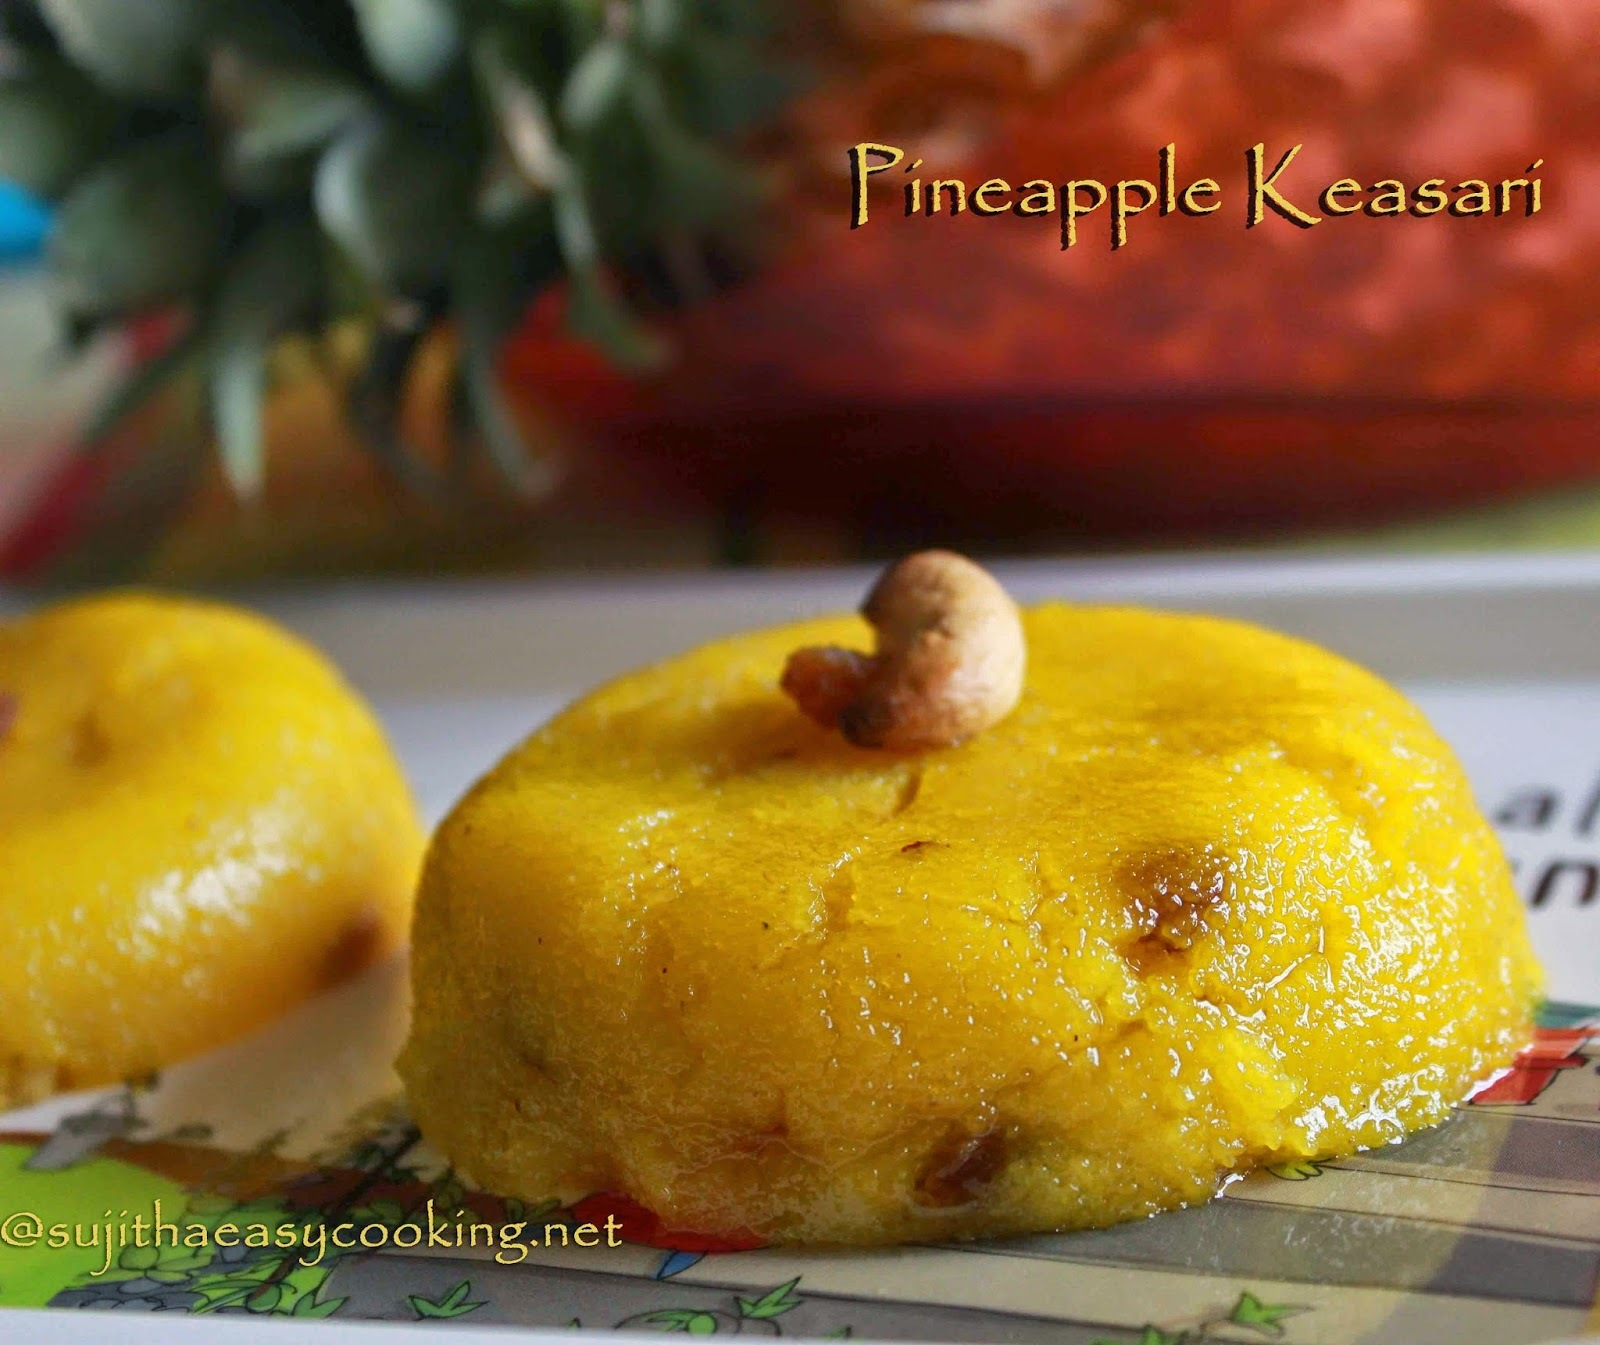 Pineapple Kesari/Pineapple keasari